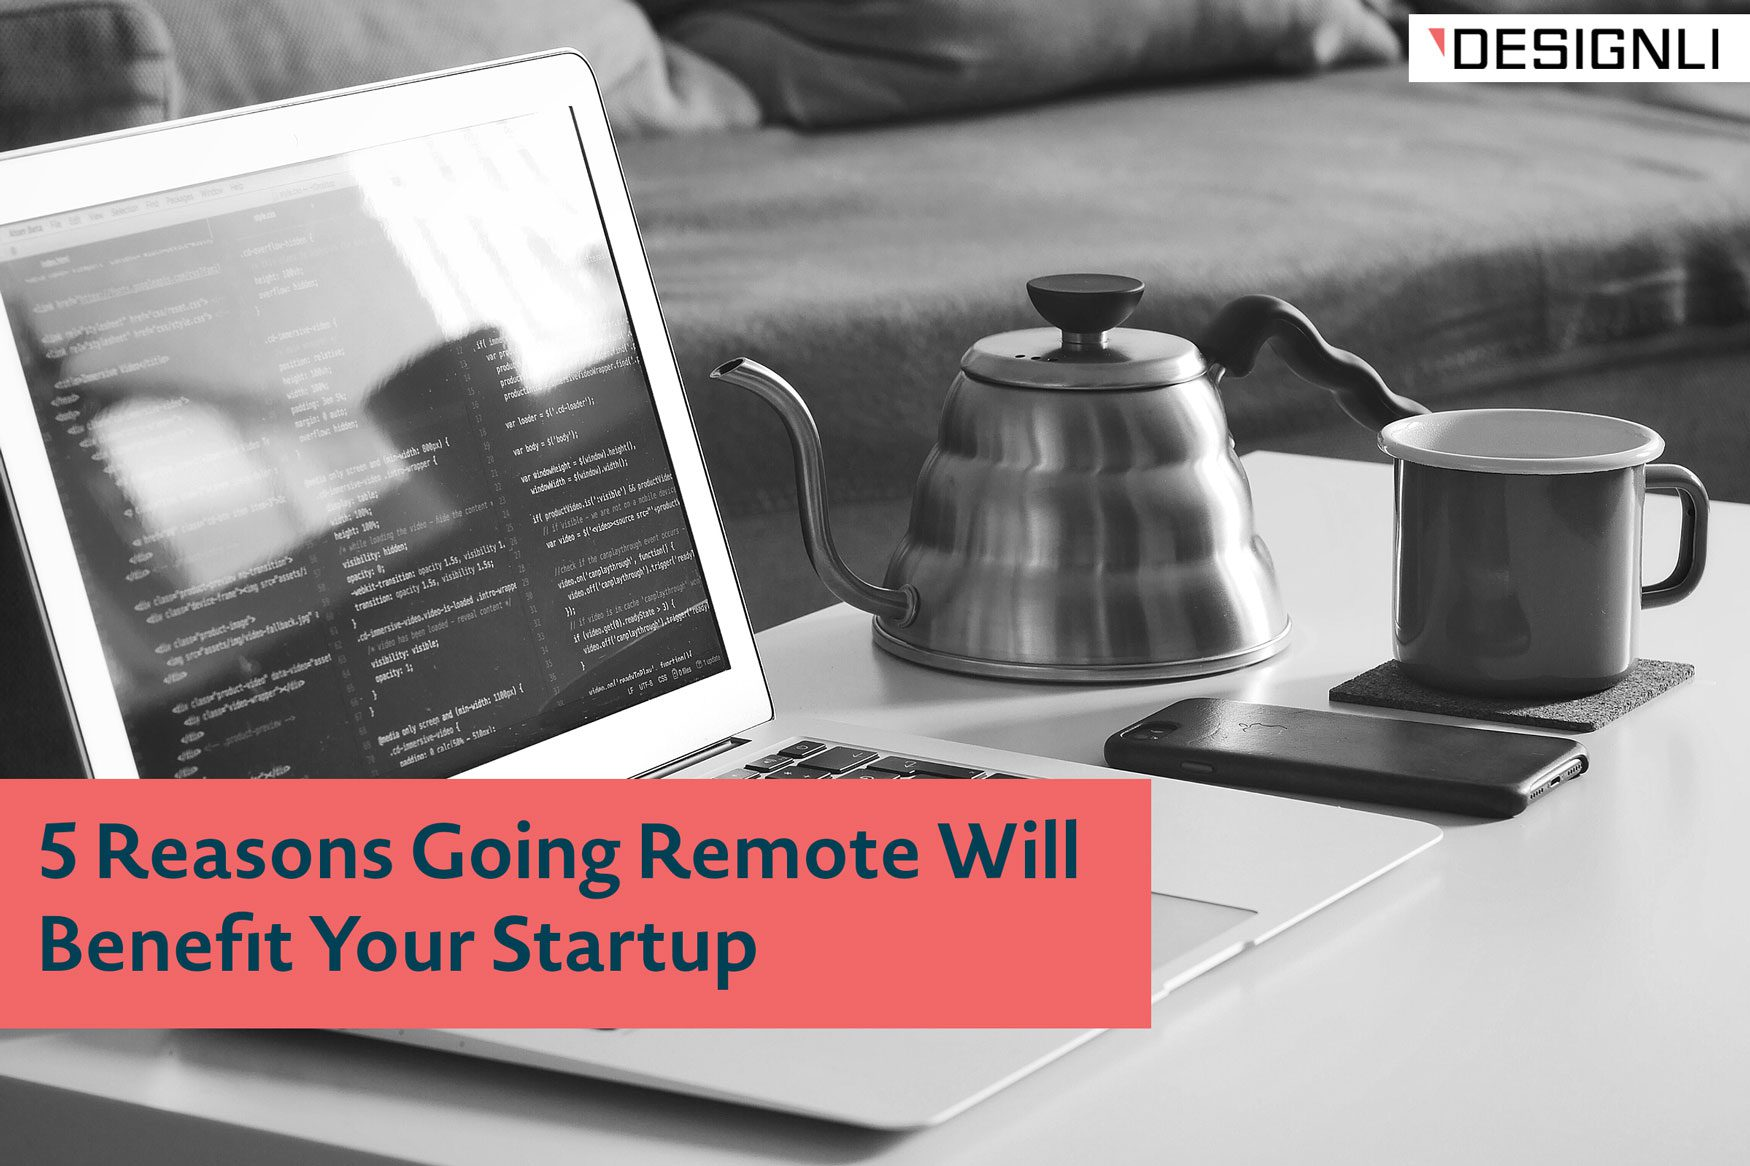 remote work will benefit your startup